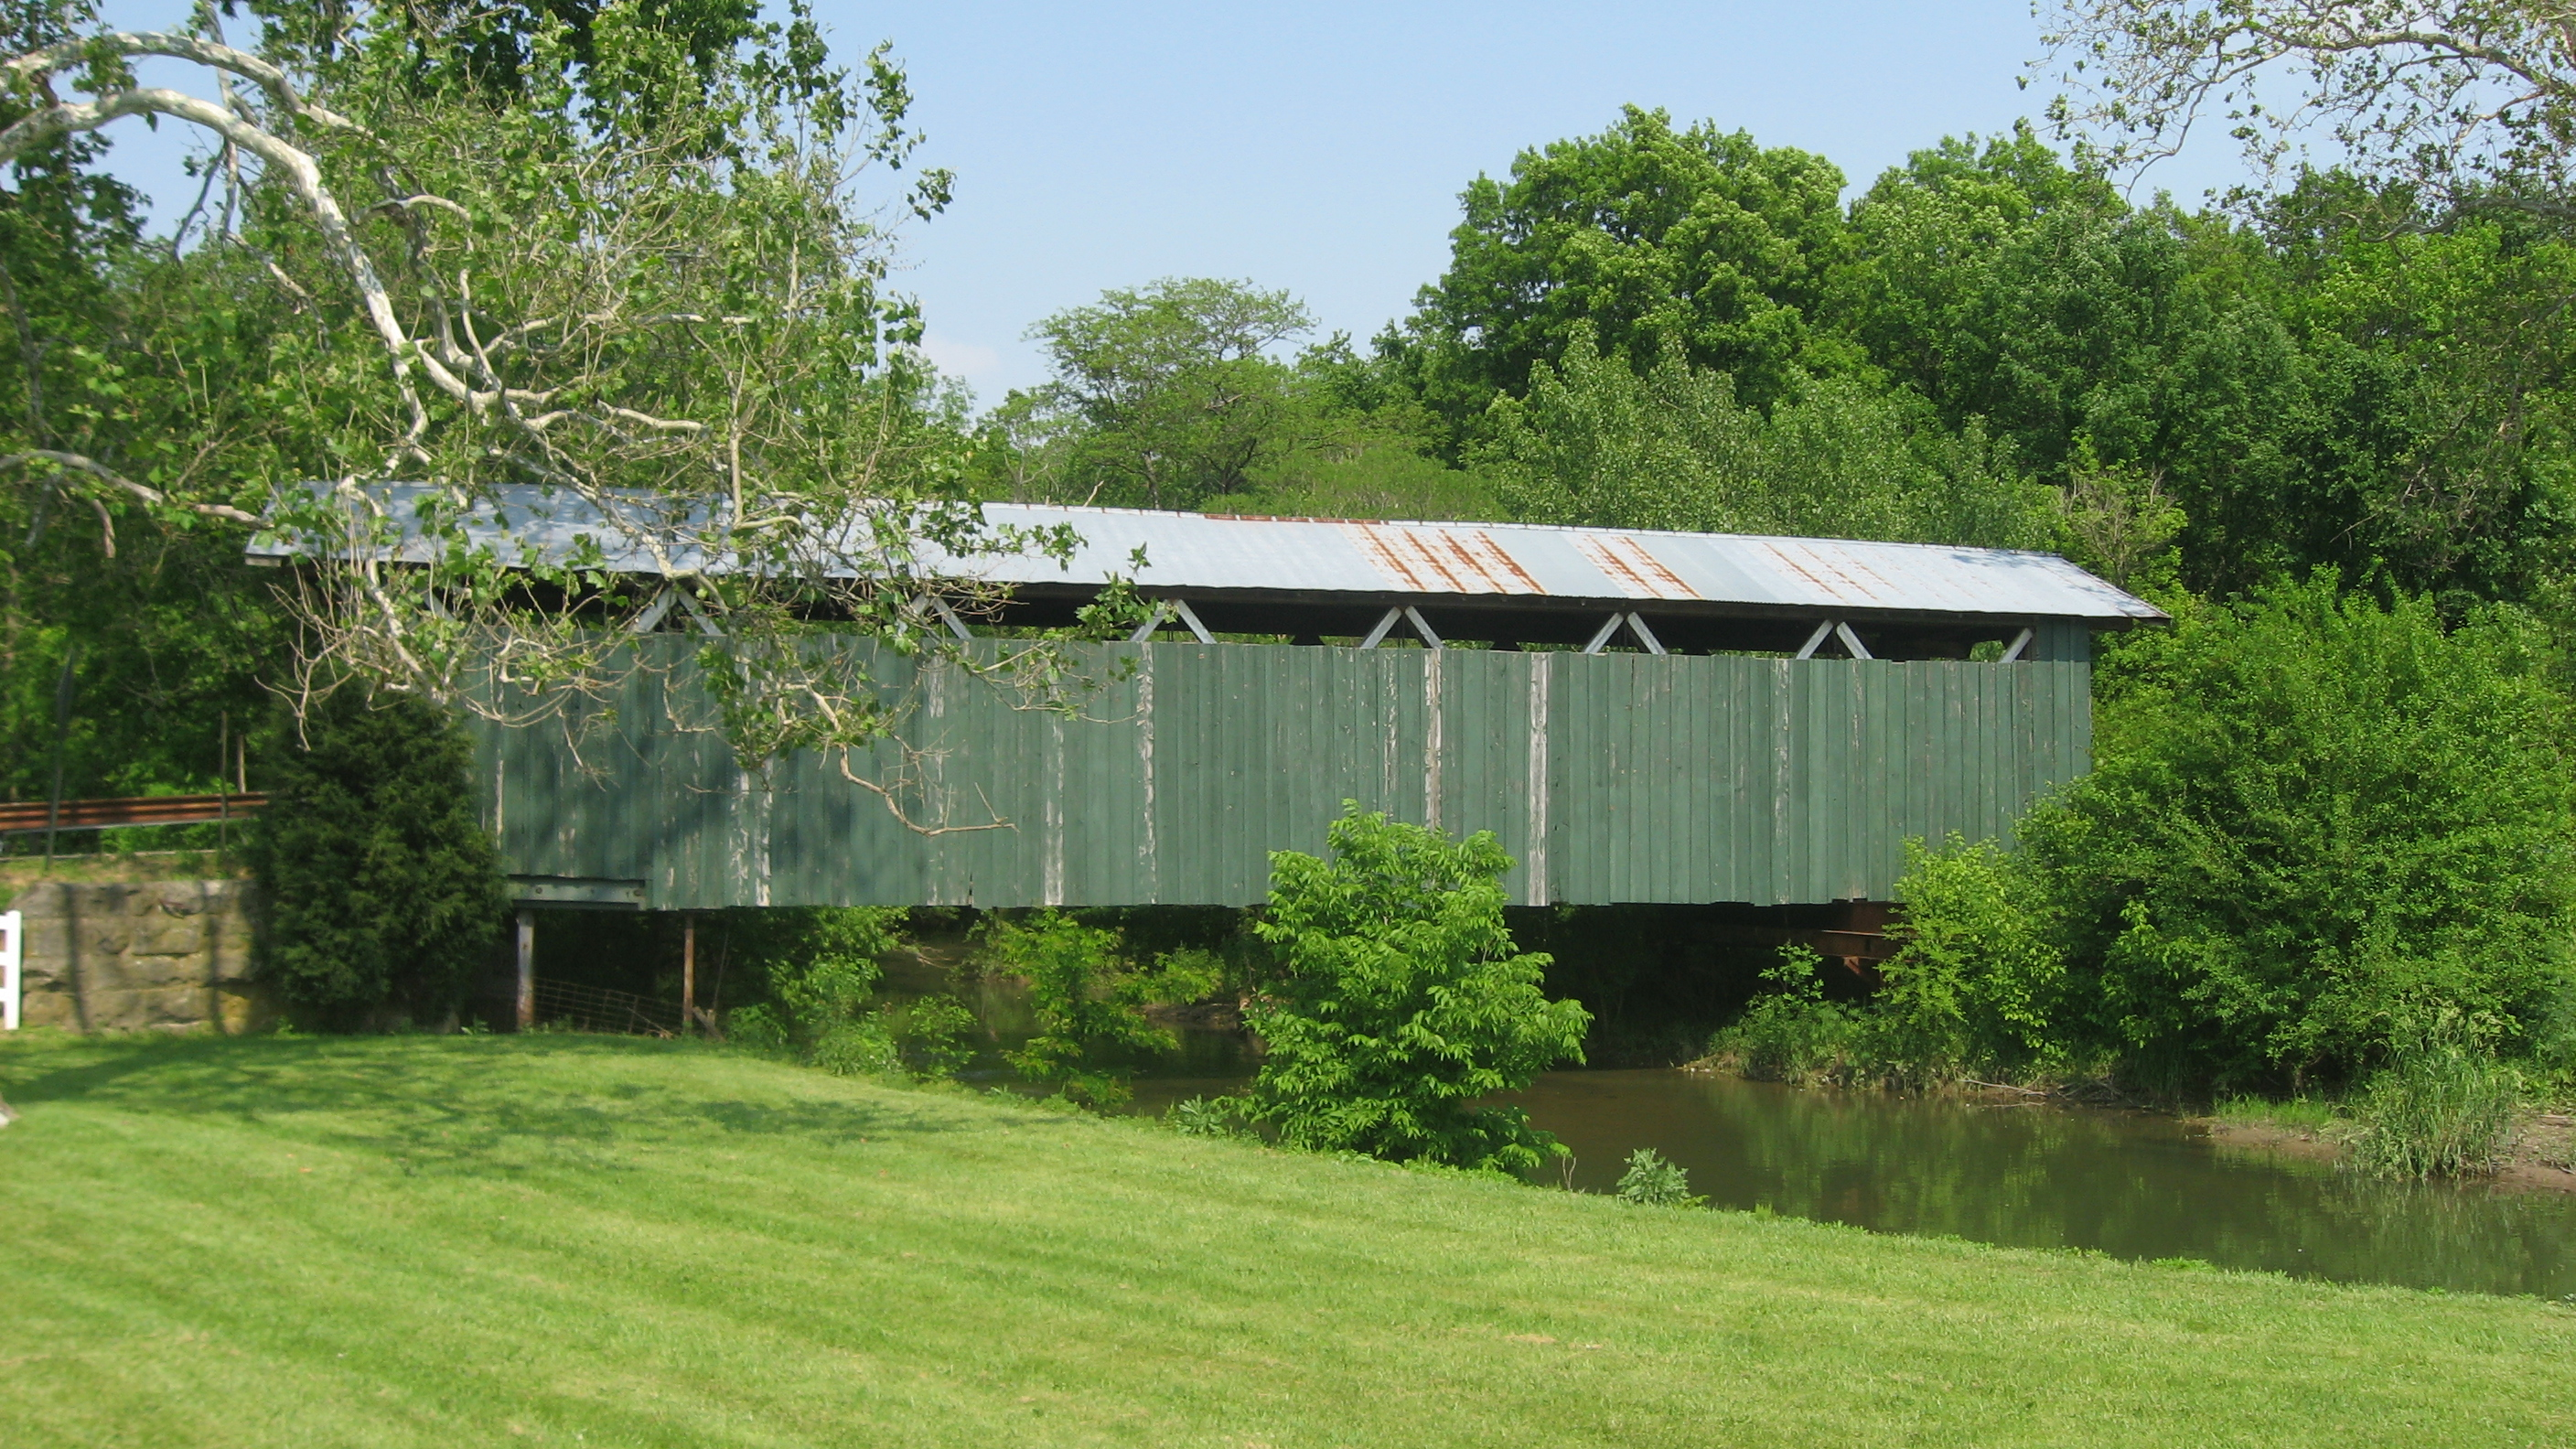 ballard road covered bridge - wikipedia